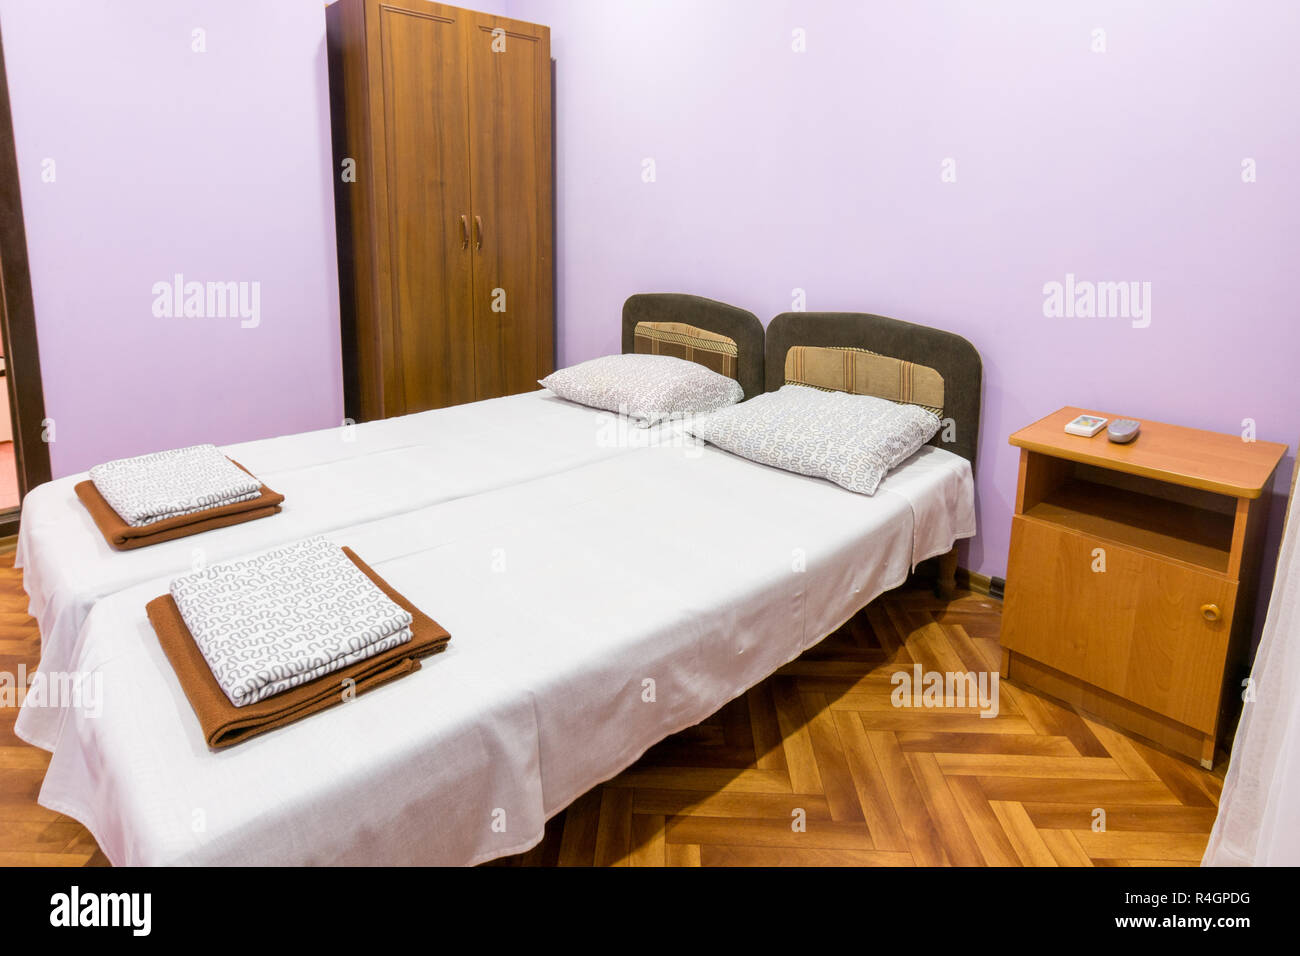 The Interior Of A Small Room With A Double Bed A Bedside Table And